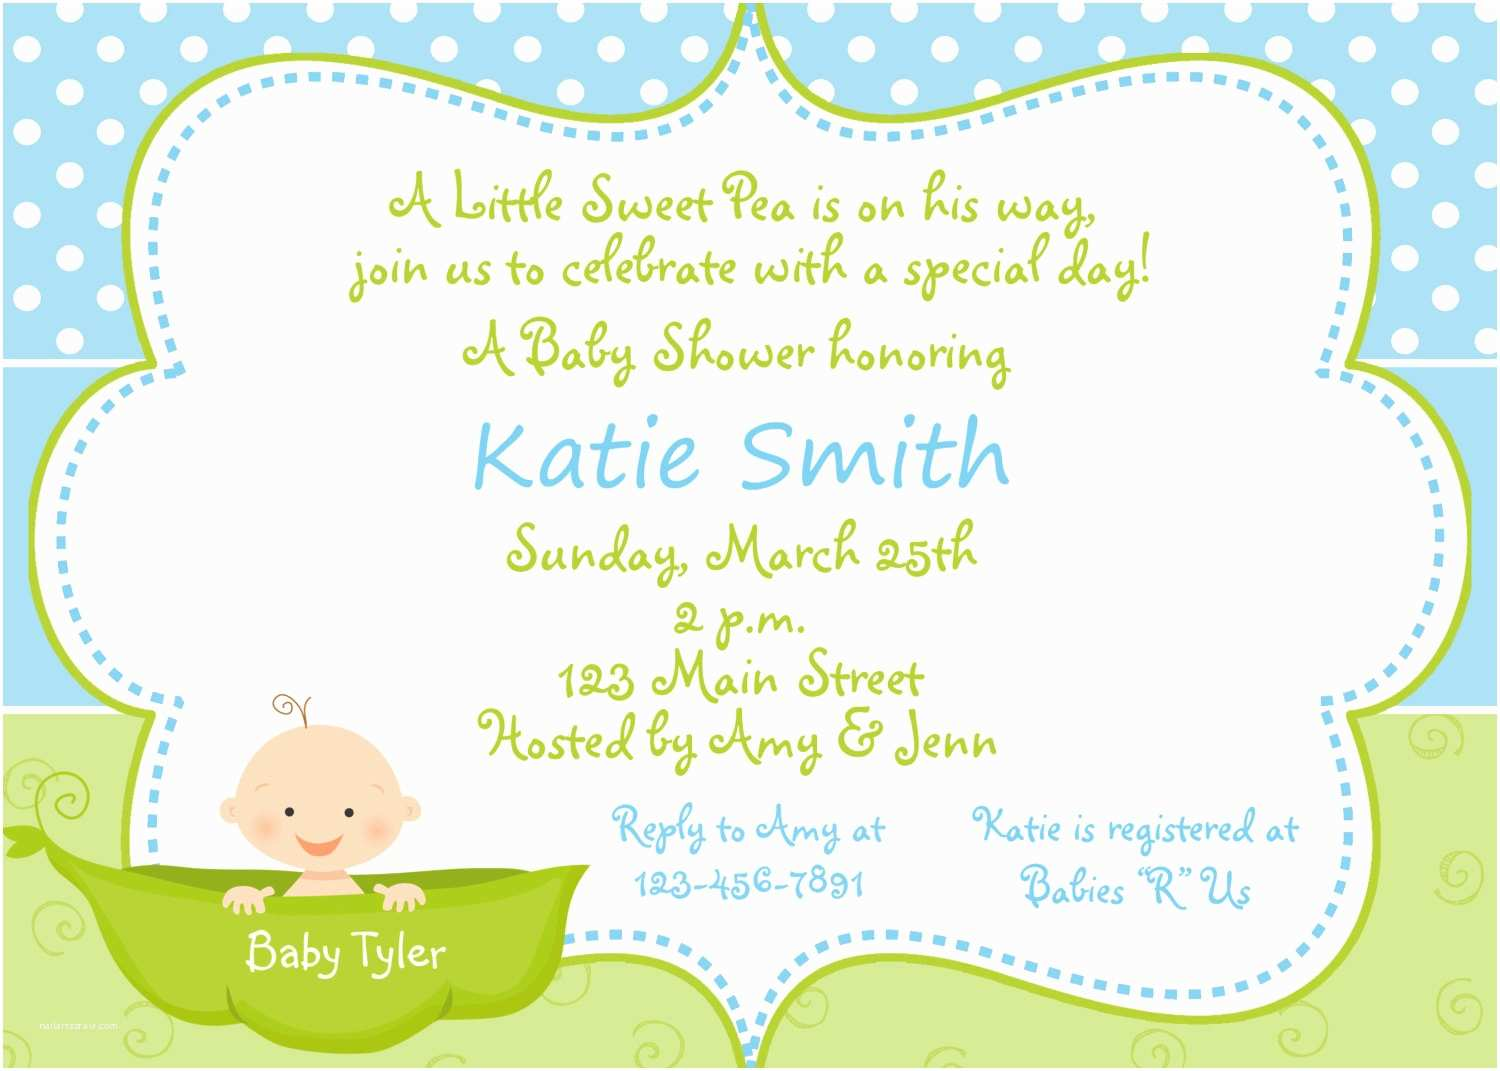 Baby Shower Invitations for Boy Baby Shower Invitations for Boy & Girls Baby Shower